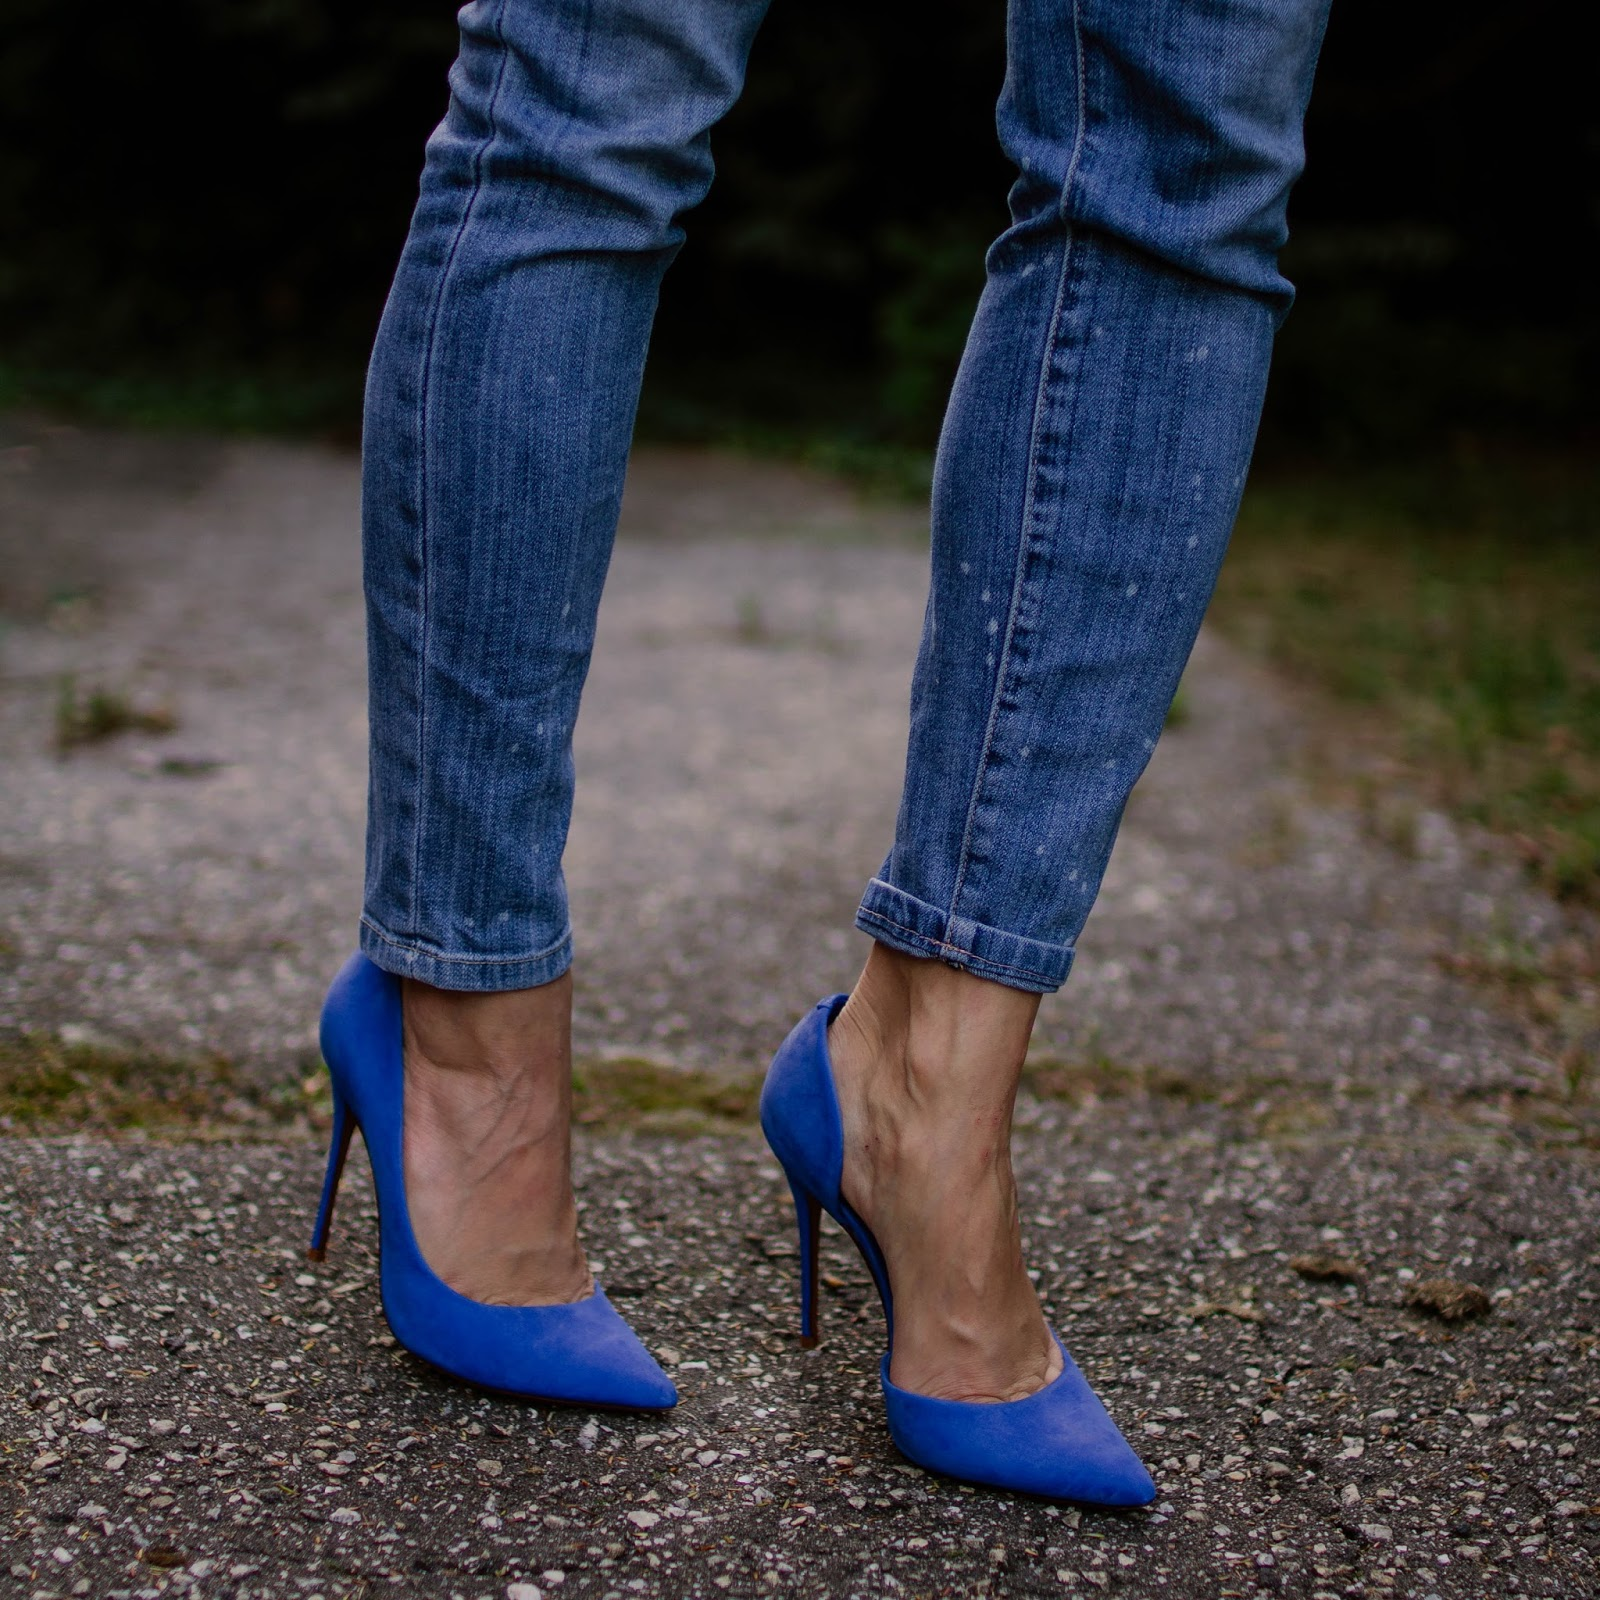 dorsay-blue-pump-blue-suede-shoes